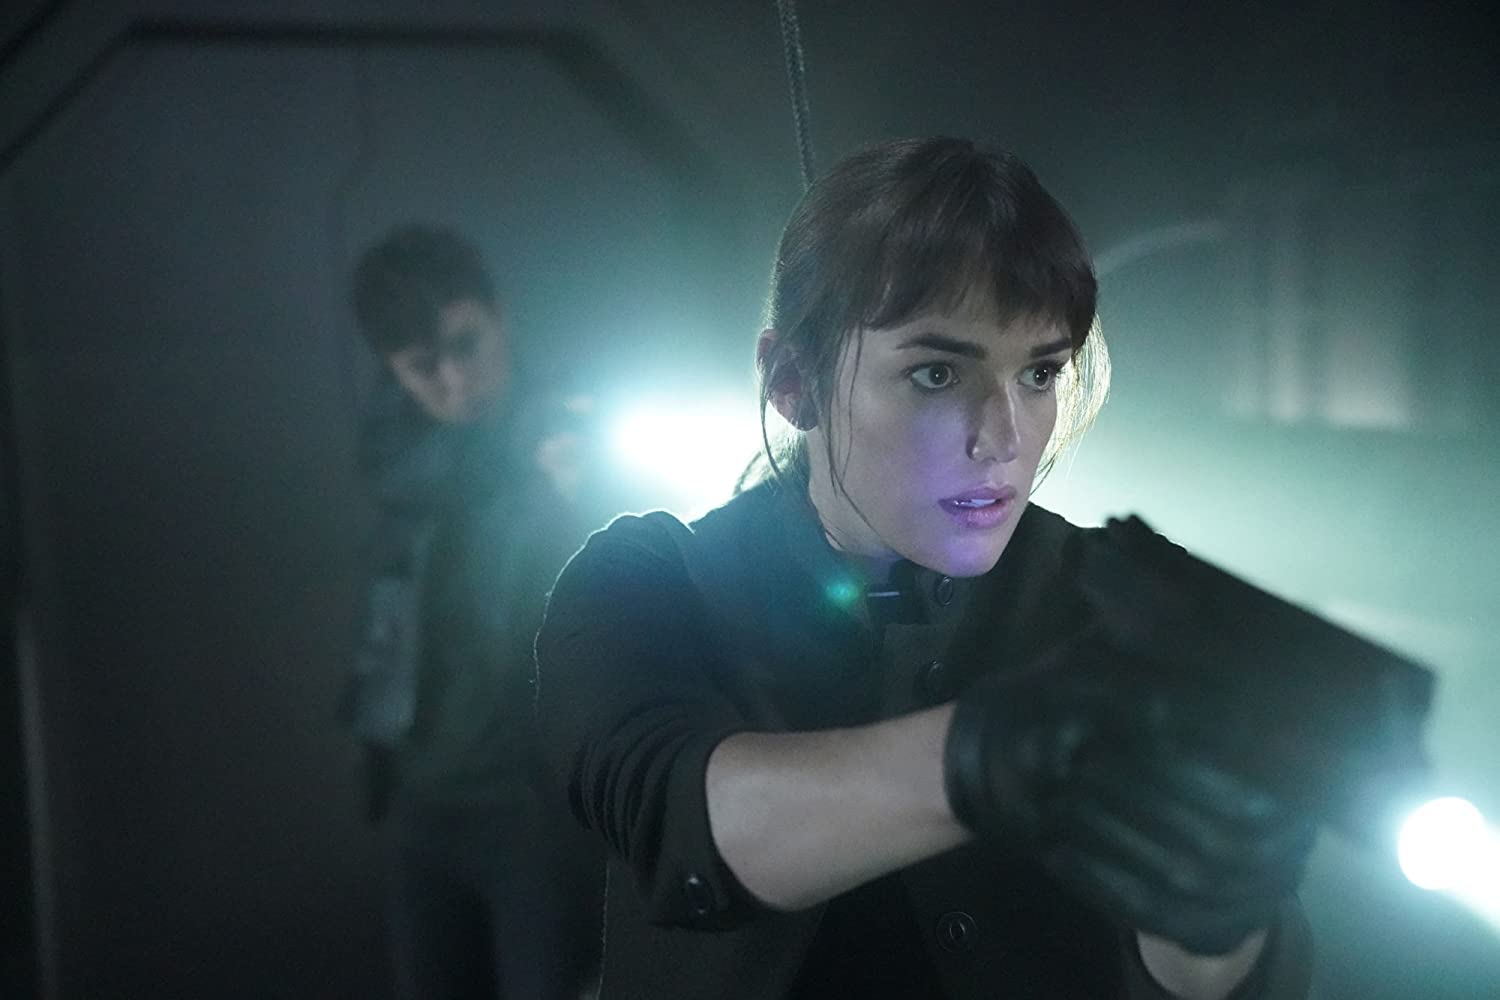 Elizabeth Henstridge in Agents of S.H.I.E.L.D. (2013)